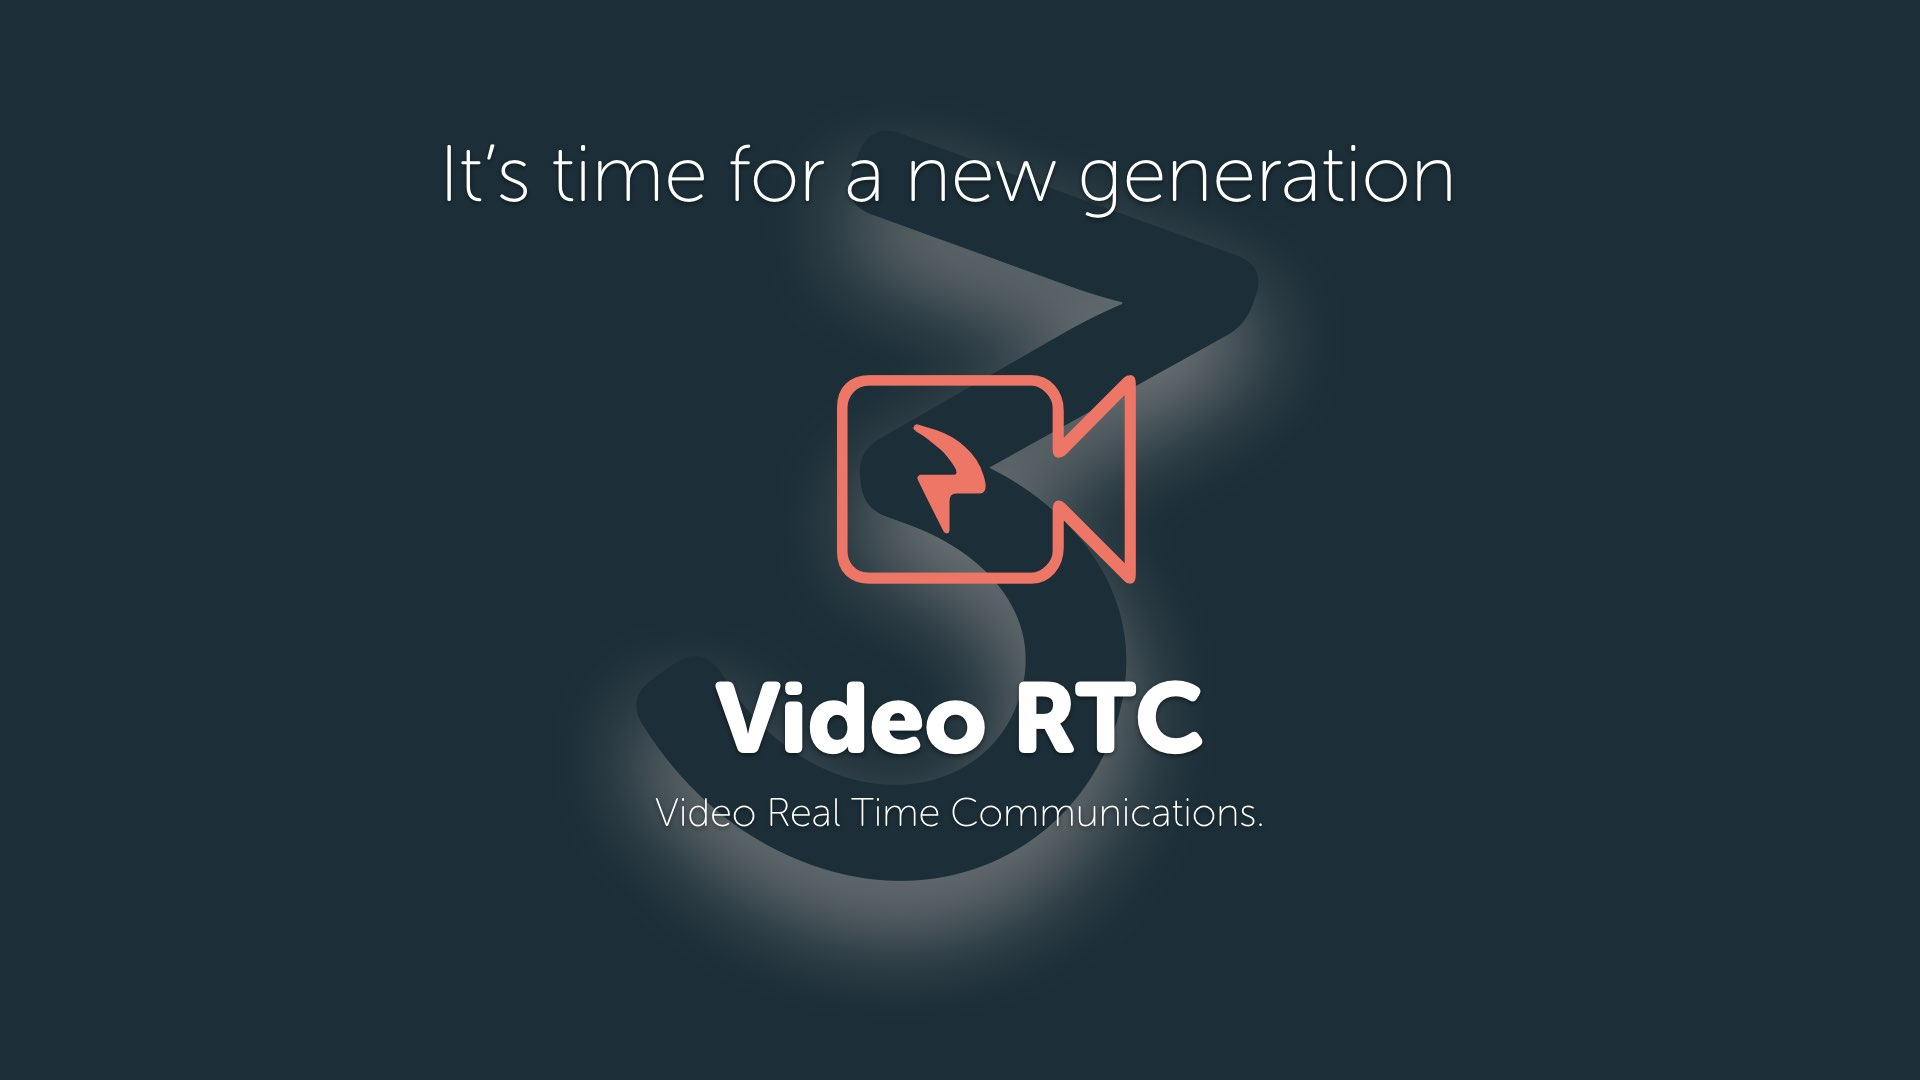 Video RTC industries